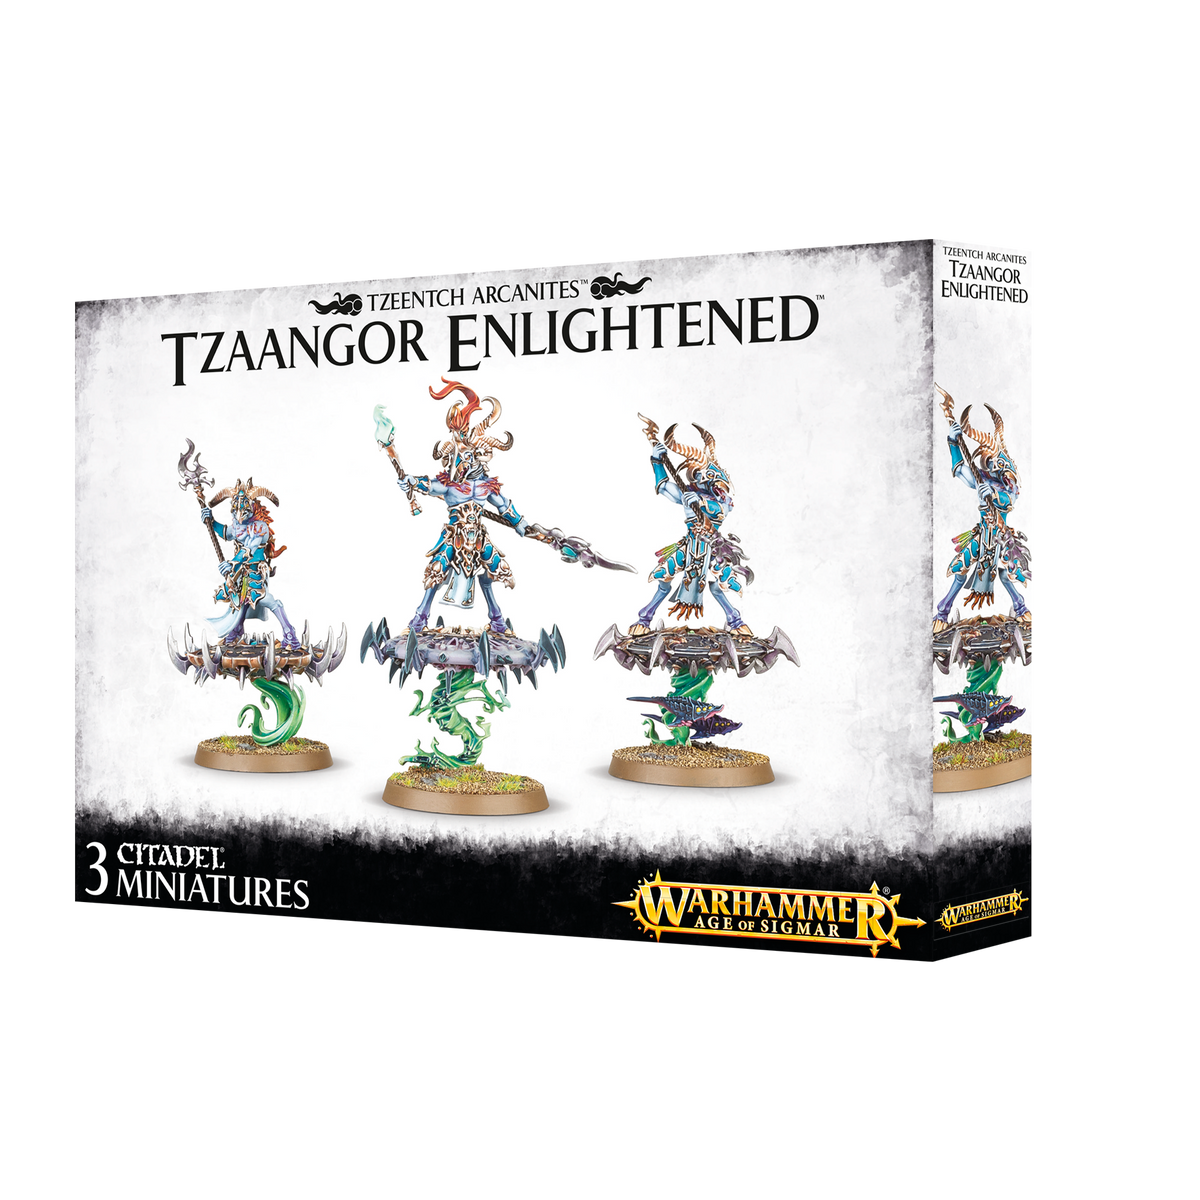 WARHAMMER AGE OF SIGMAR - DISCIPLES OF TZEENTCH - TZAANGOR ENLIGHTENED